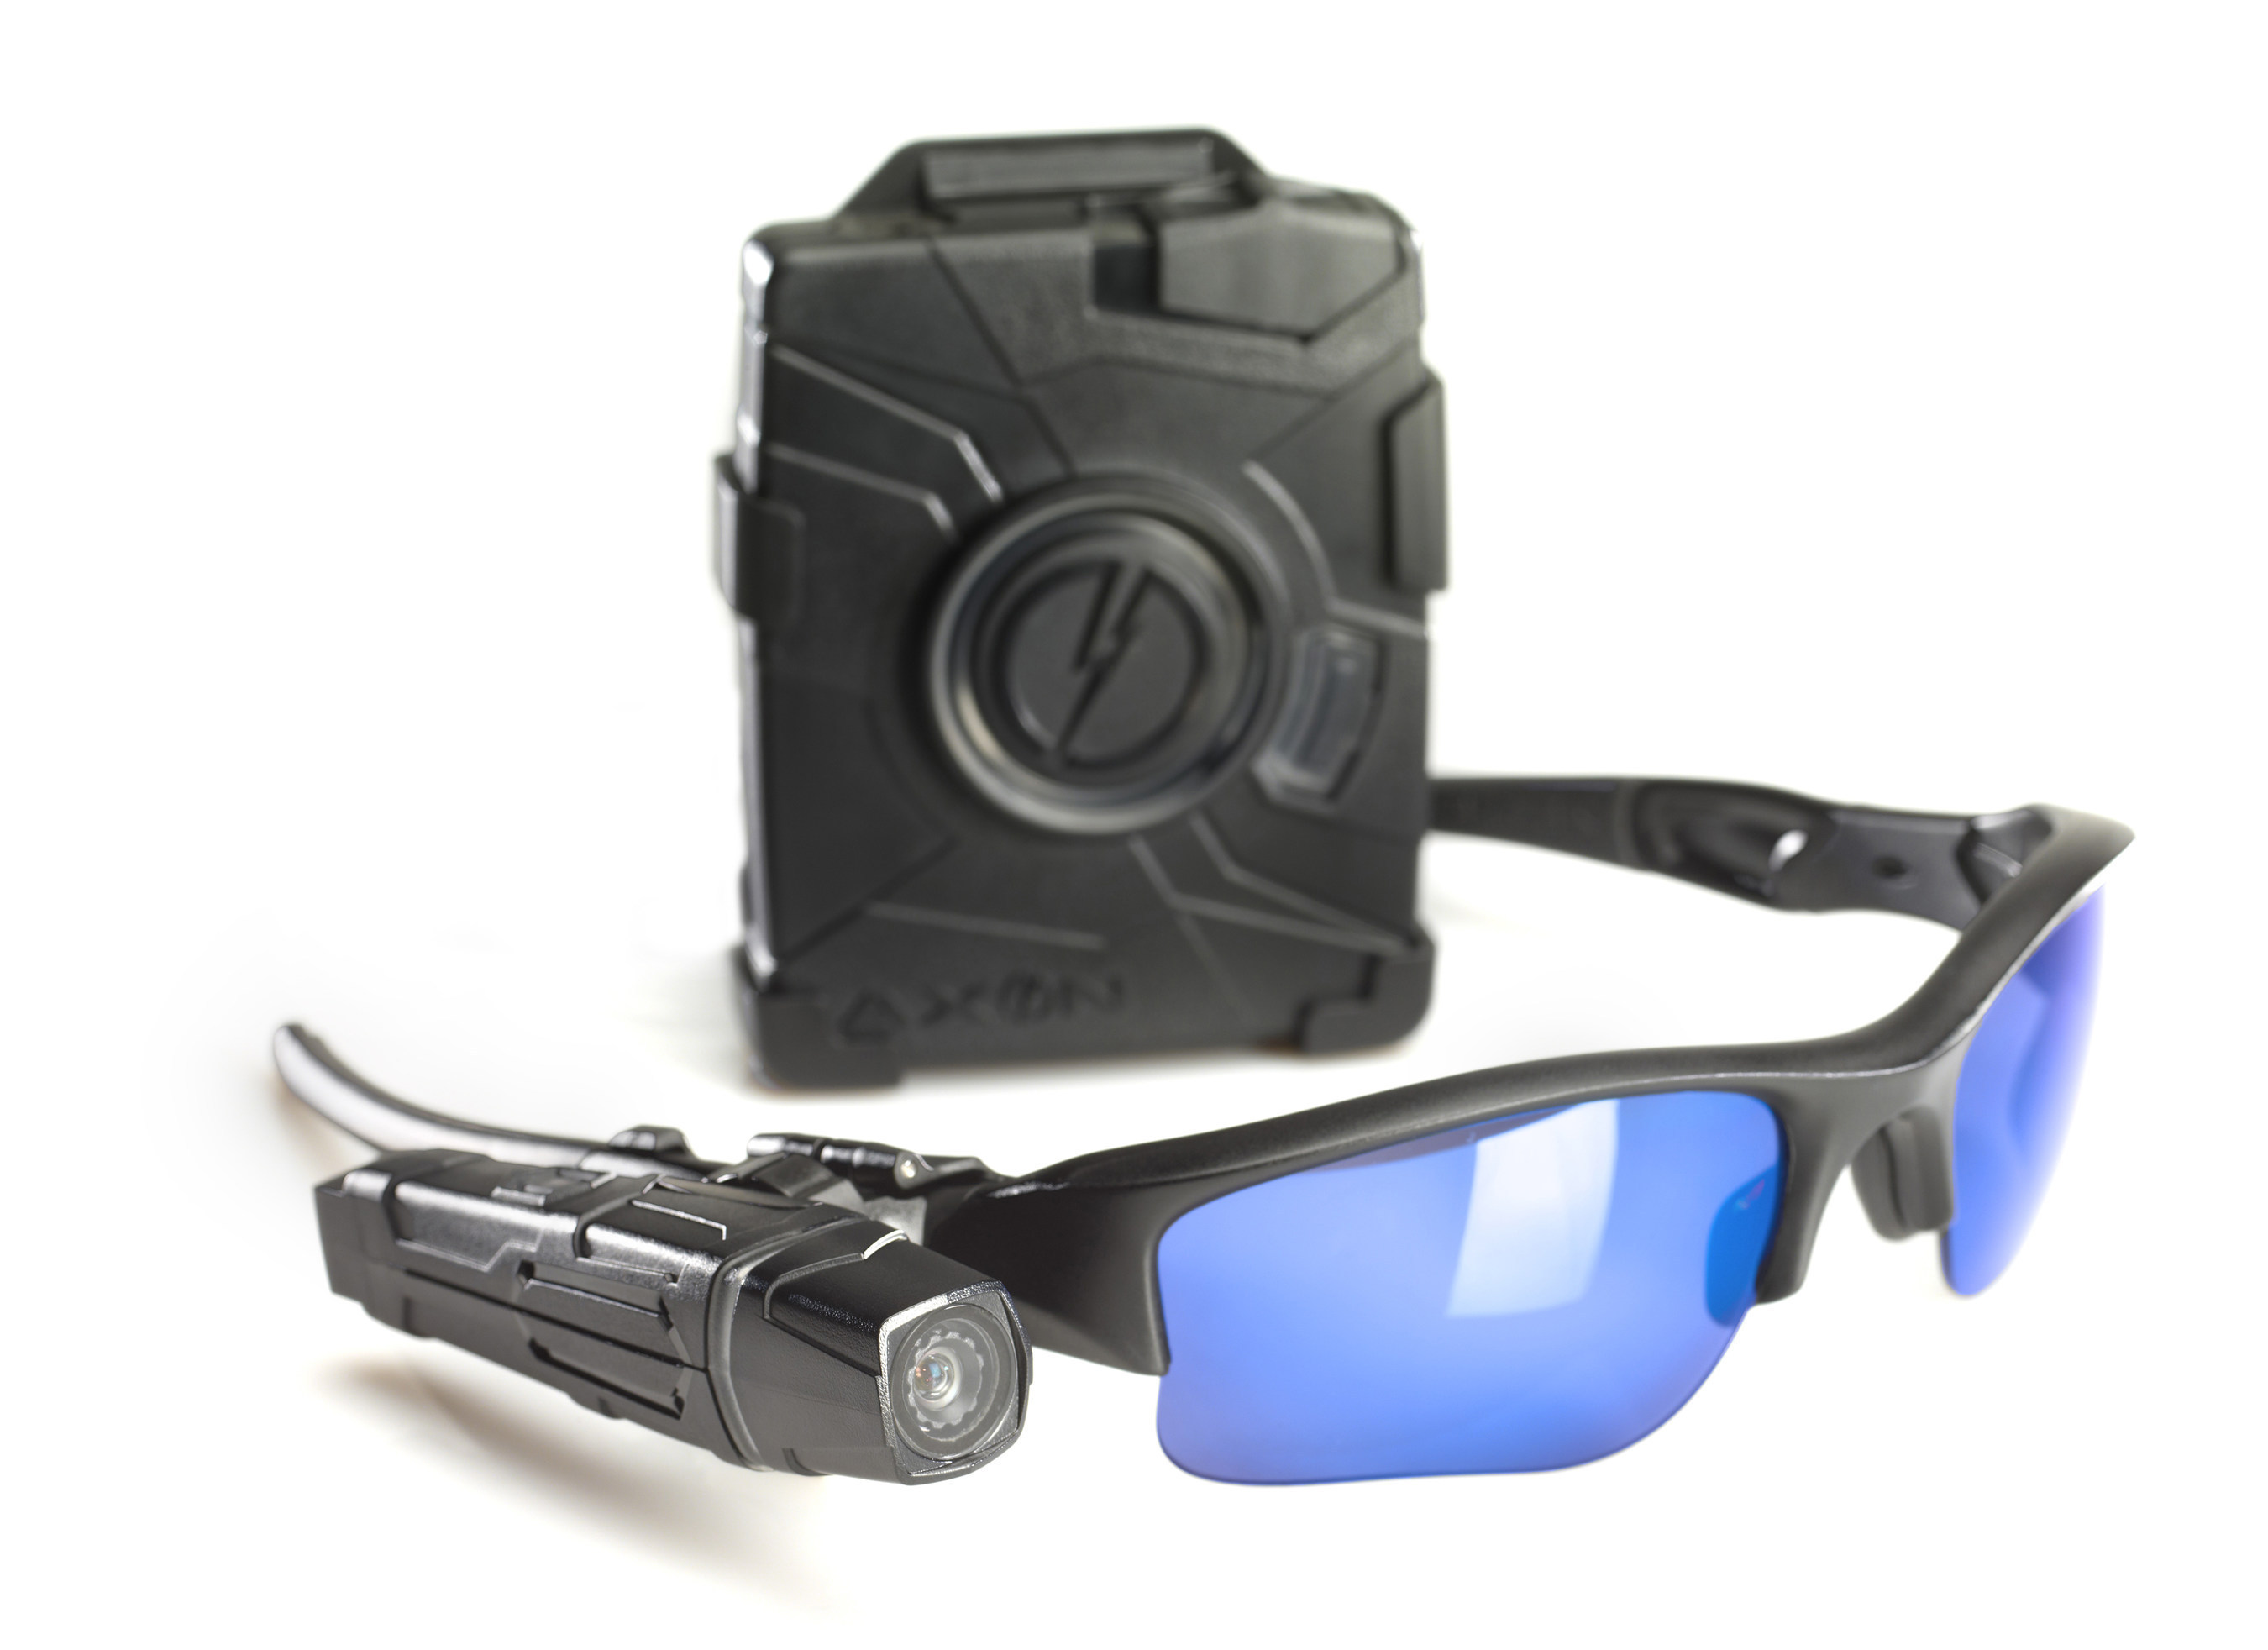 Tucson Becomes 16th Major City to Deploy TASER's AXON Body Cameras; Selects New EVIDENCE.com Unlimited Plan